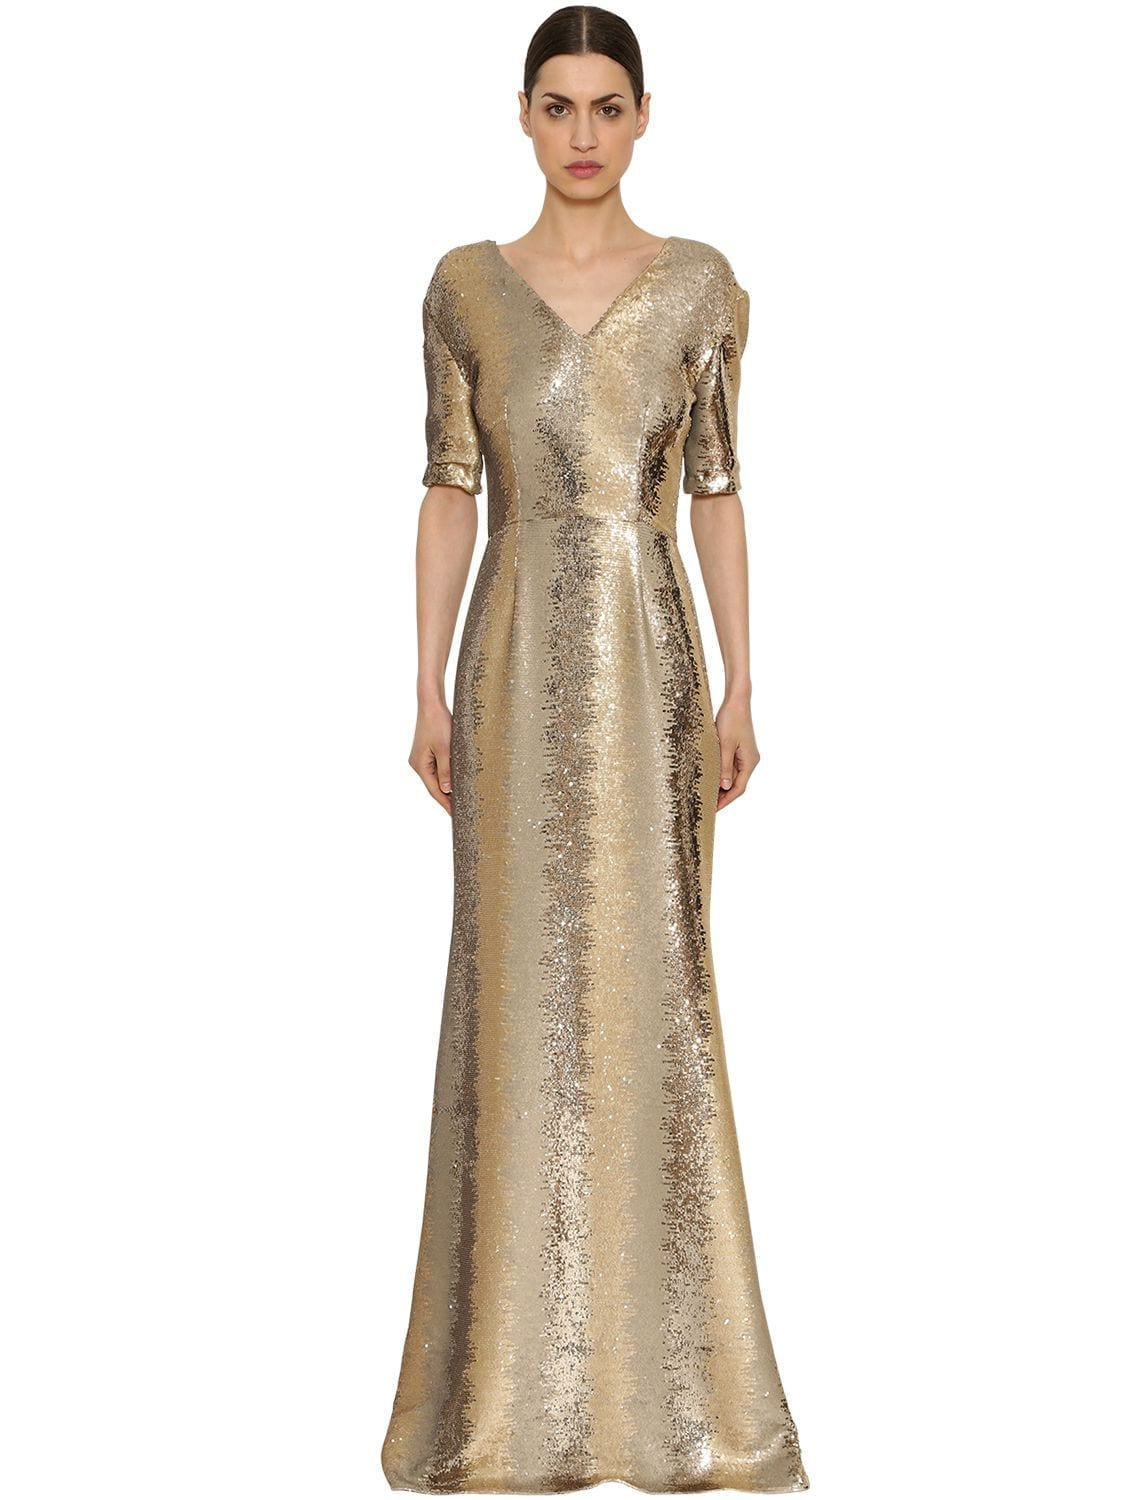 INGIE PARIS Sequined Tulle Long Gold Dress - We Select Dresses